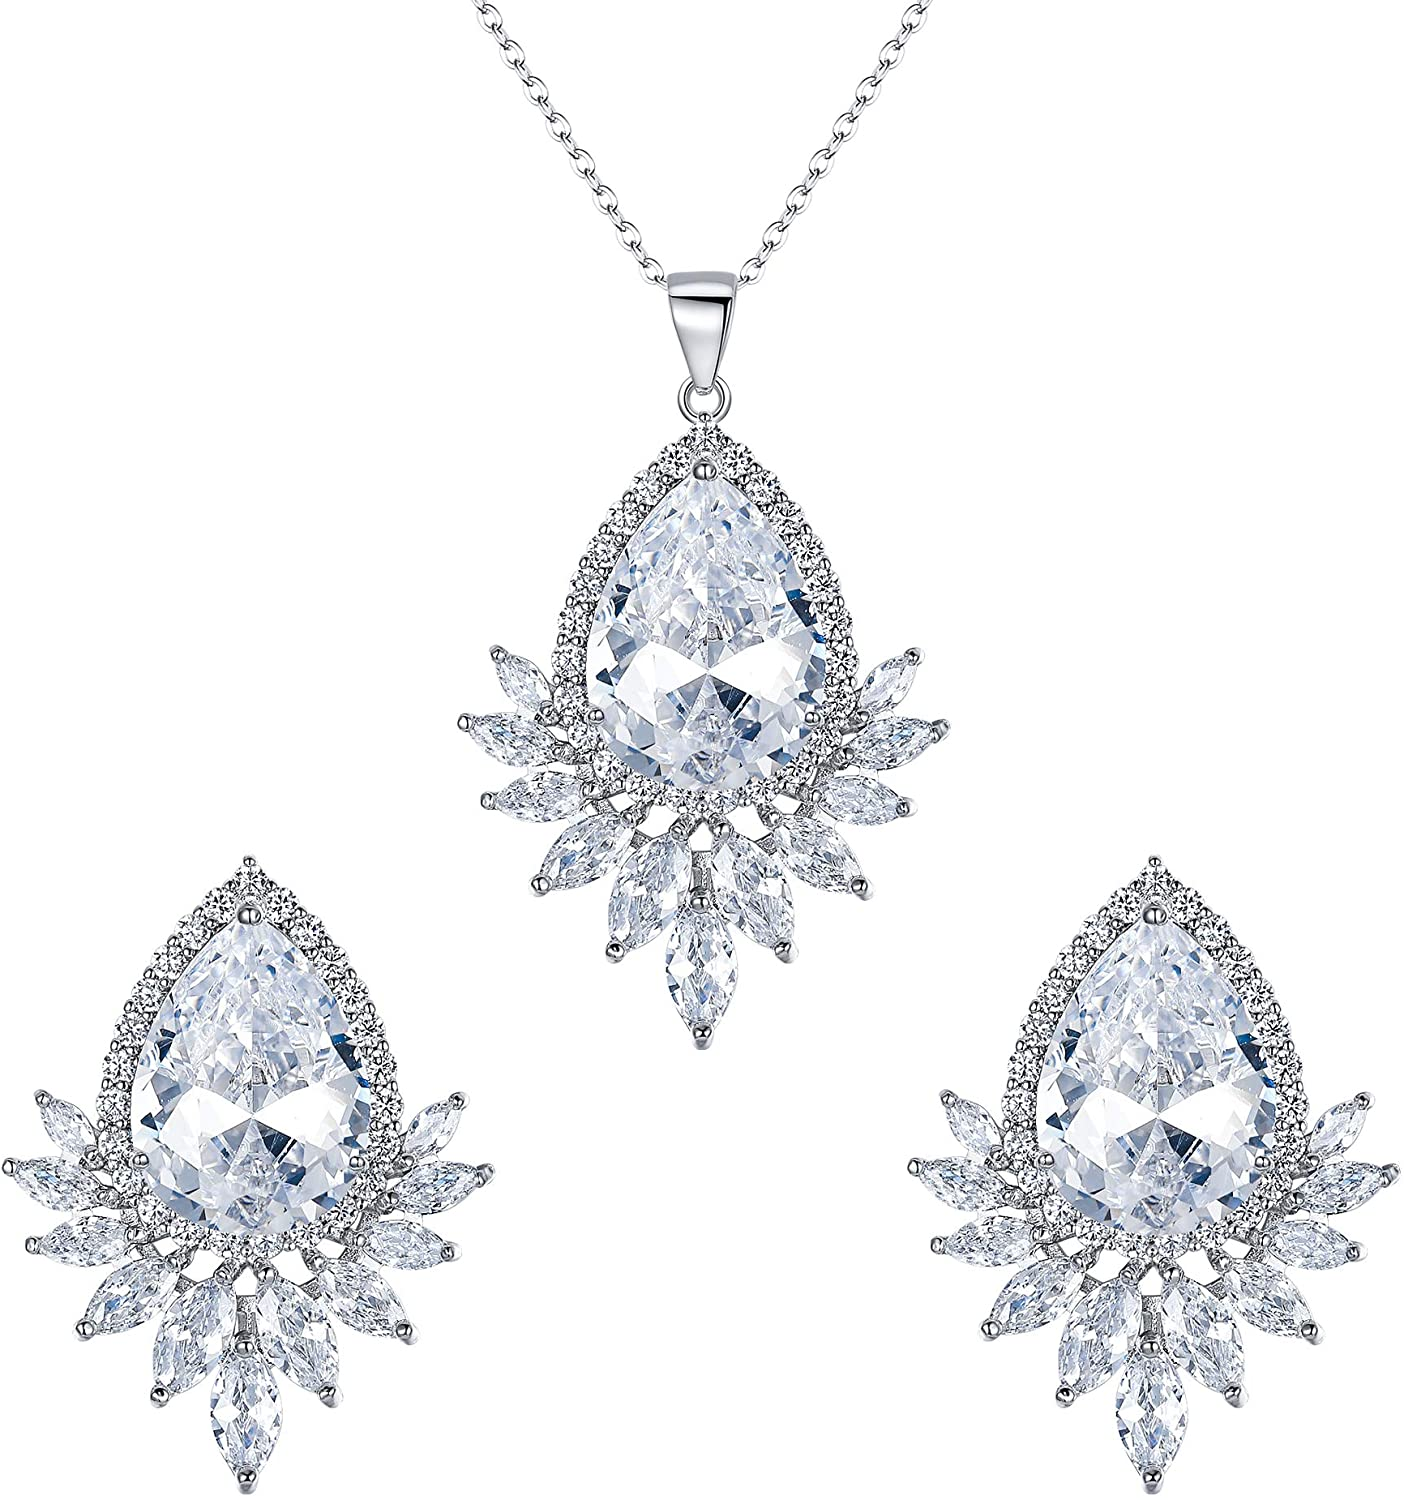 Wedure Cubic Zirconia Elegant Sunflower Necklace Earrings Set for Wedding Prom Party